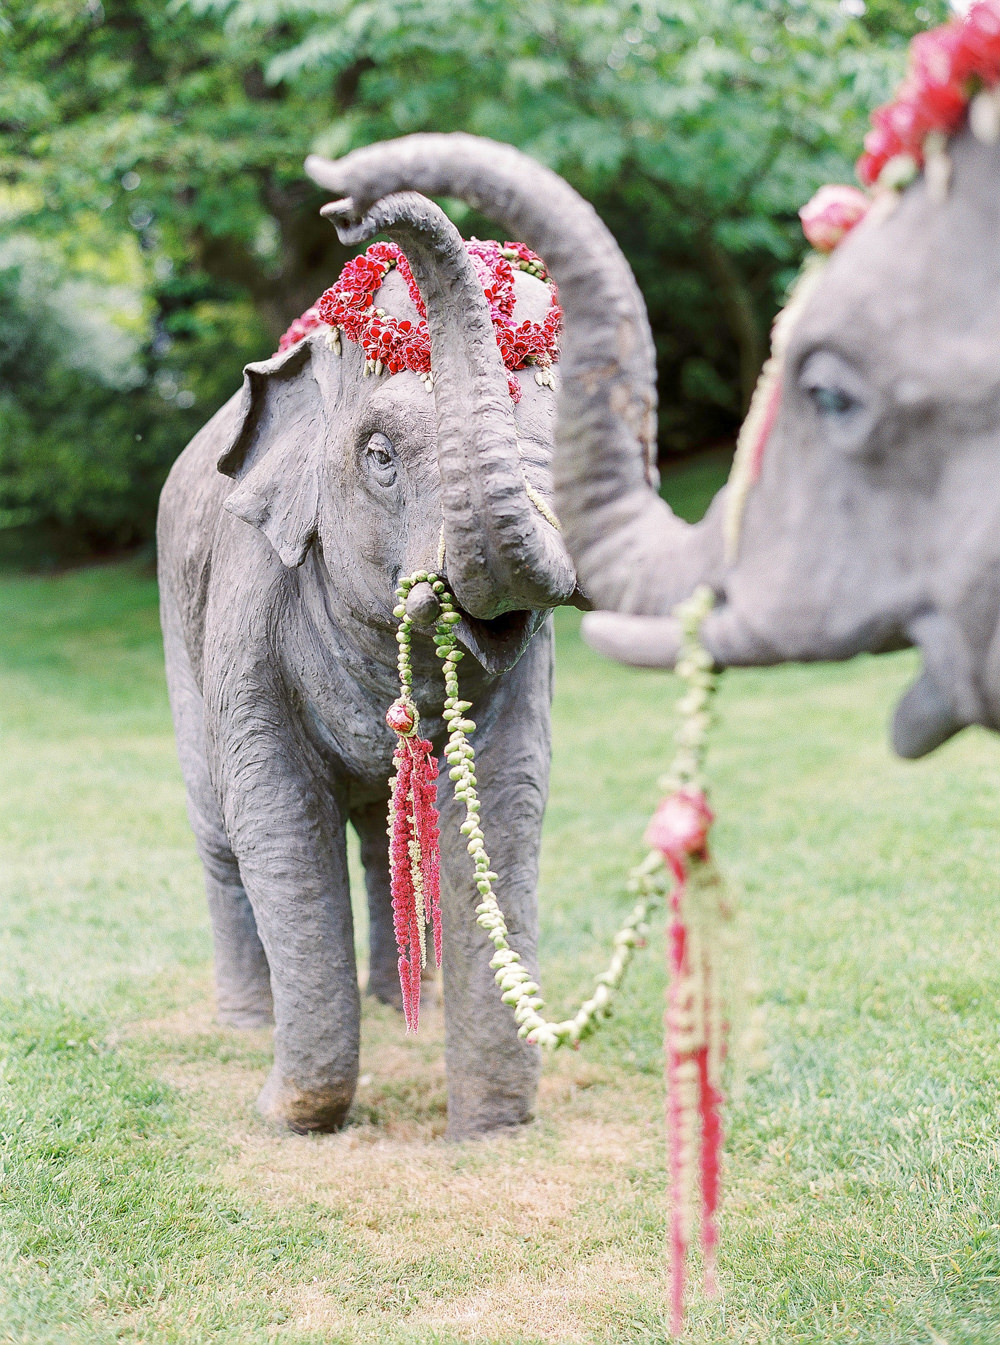 Floral decorated elephant statues